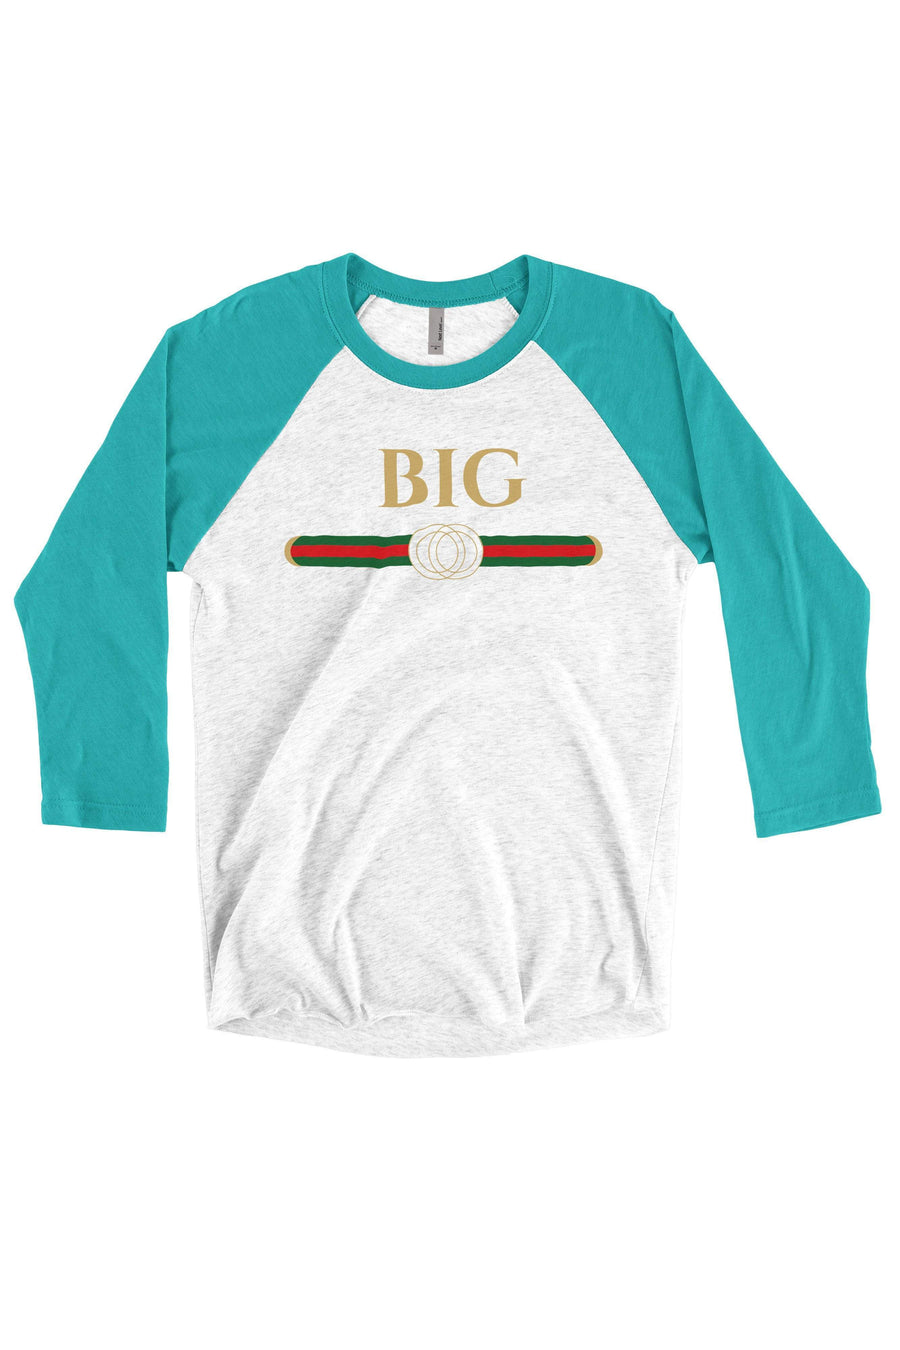 Big Little Designer Shirt - Next Level Unisex Triblend 3/4-Sleeve Raglan, Ladies, Sunny and Southern, - Sunny and Southern,